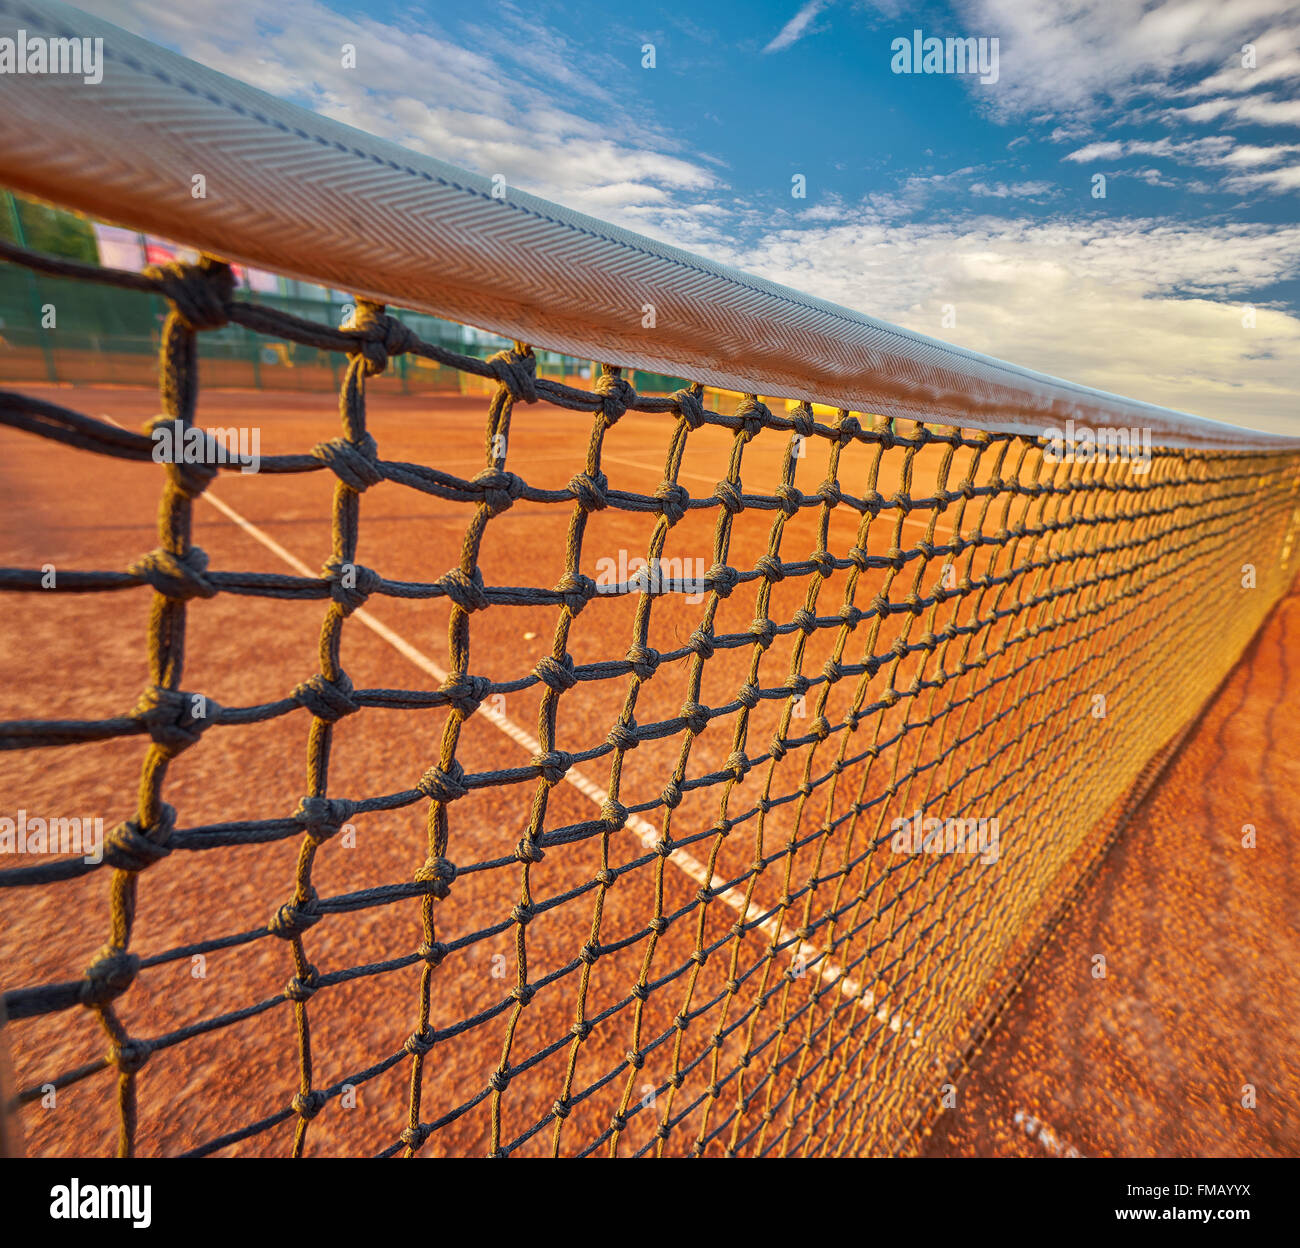 Tennis Tennis sur fond de grille Photo Stock